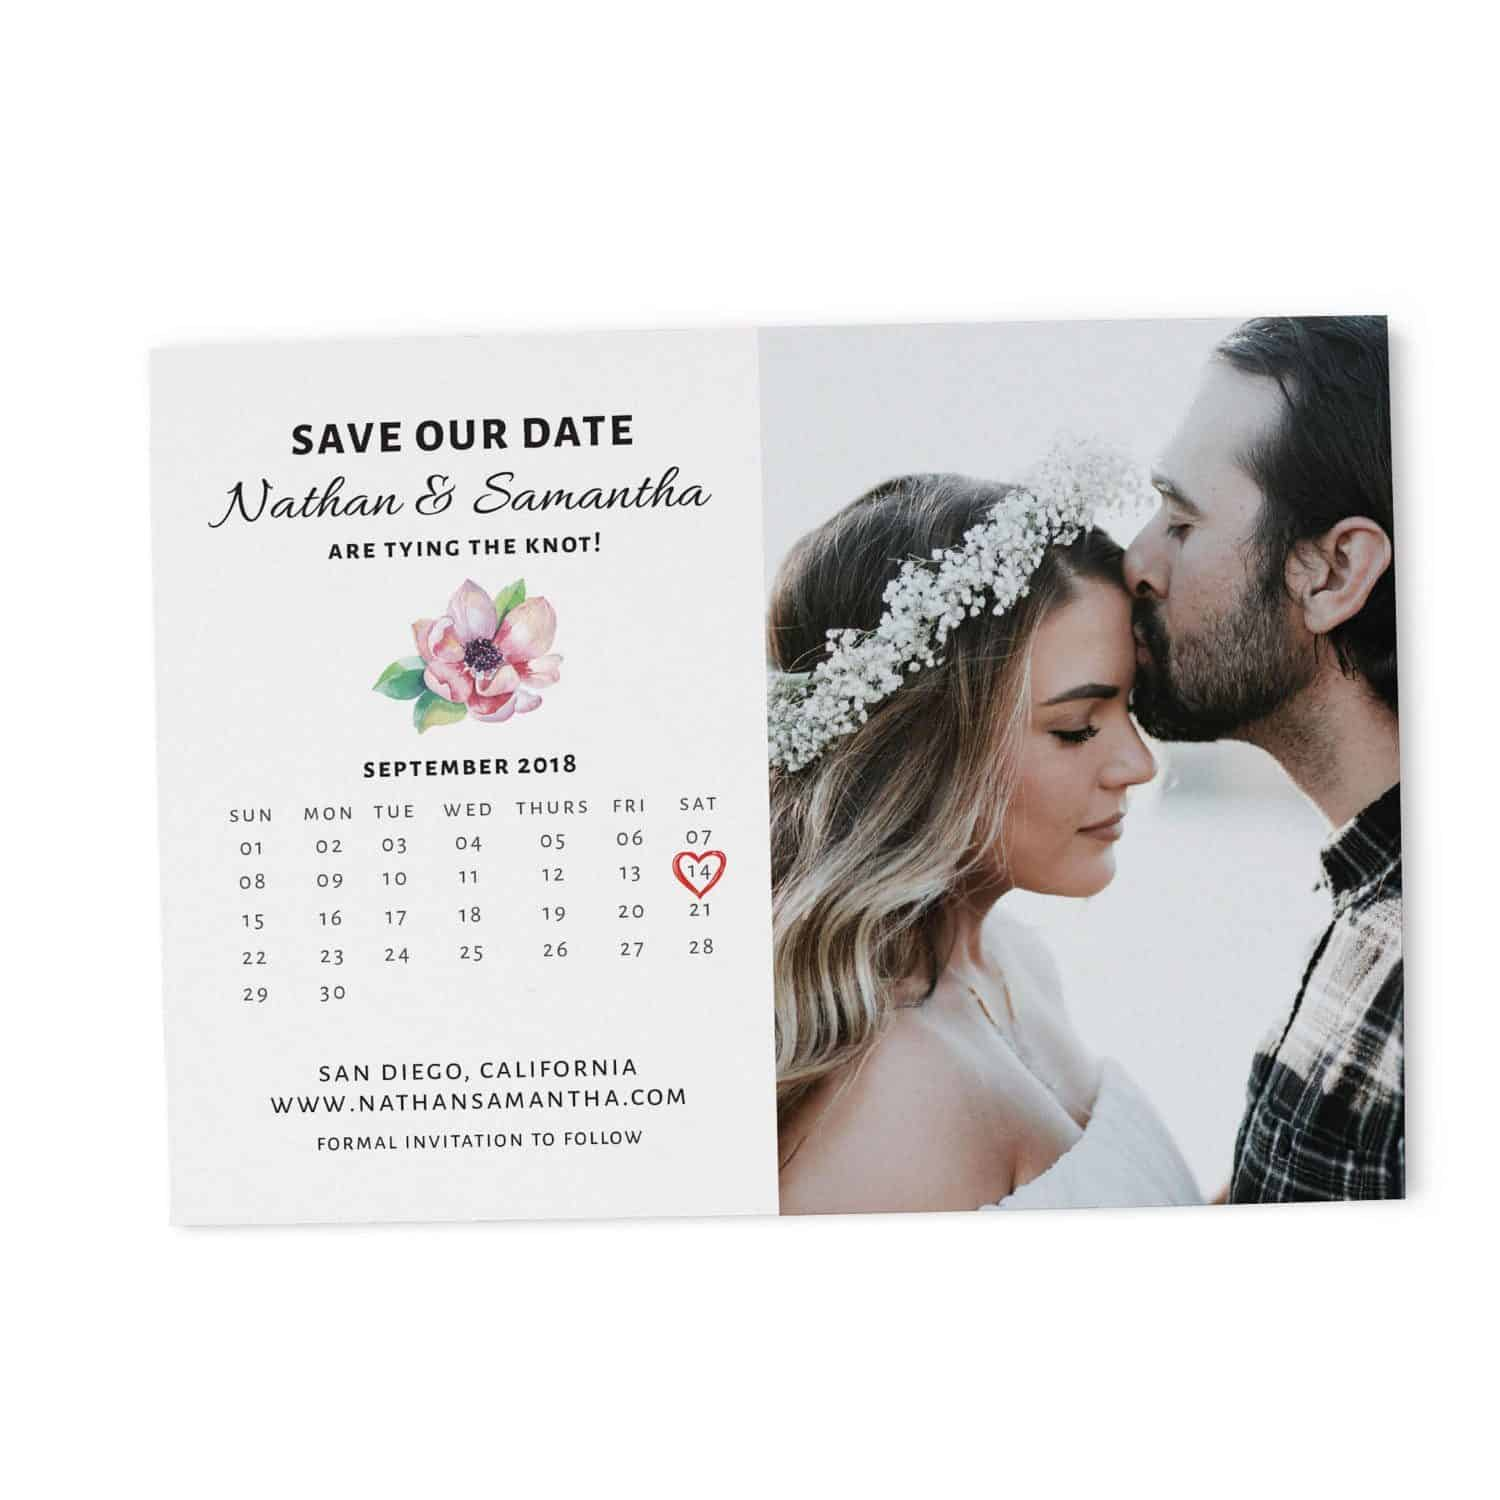 Save the Date Cards Add Your Own Photo, Simple Calendar Save the Date Cards